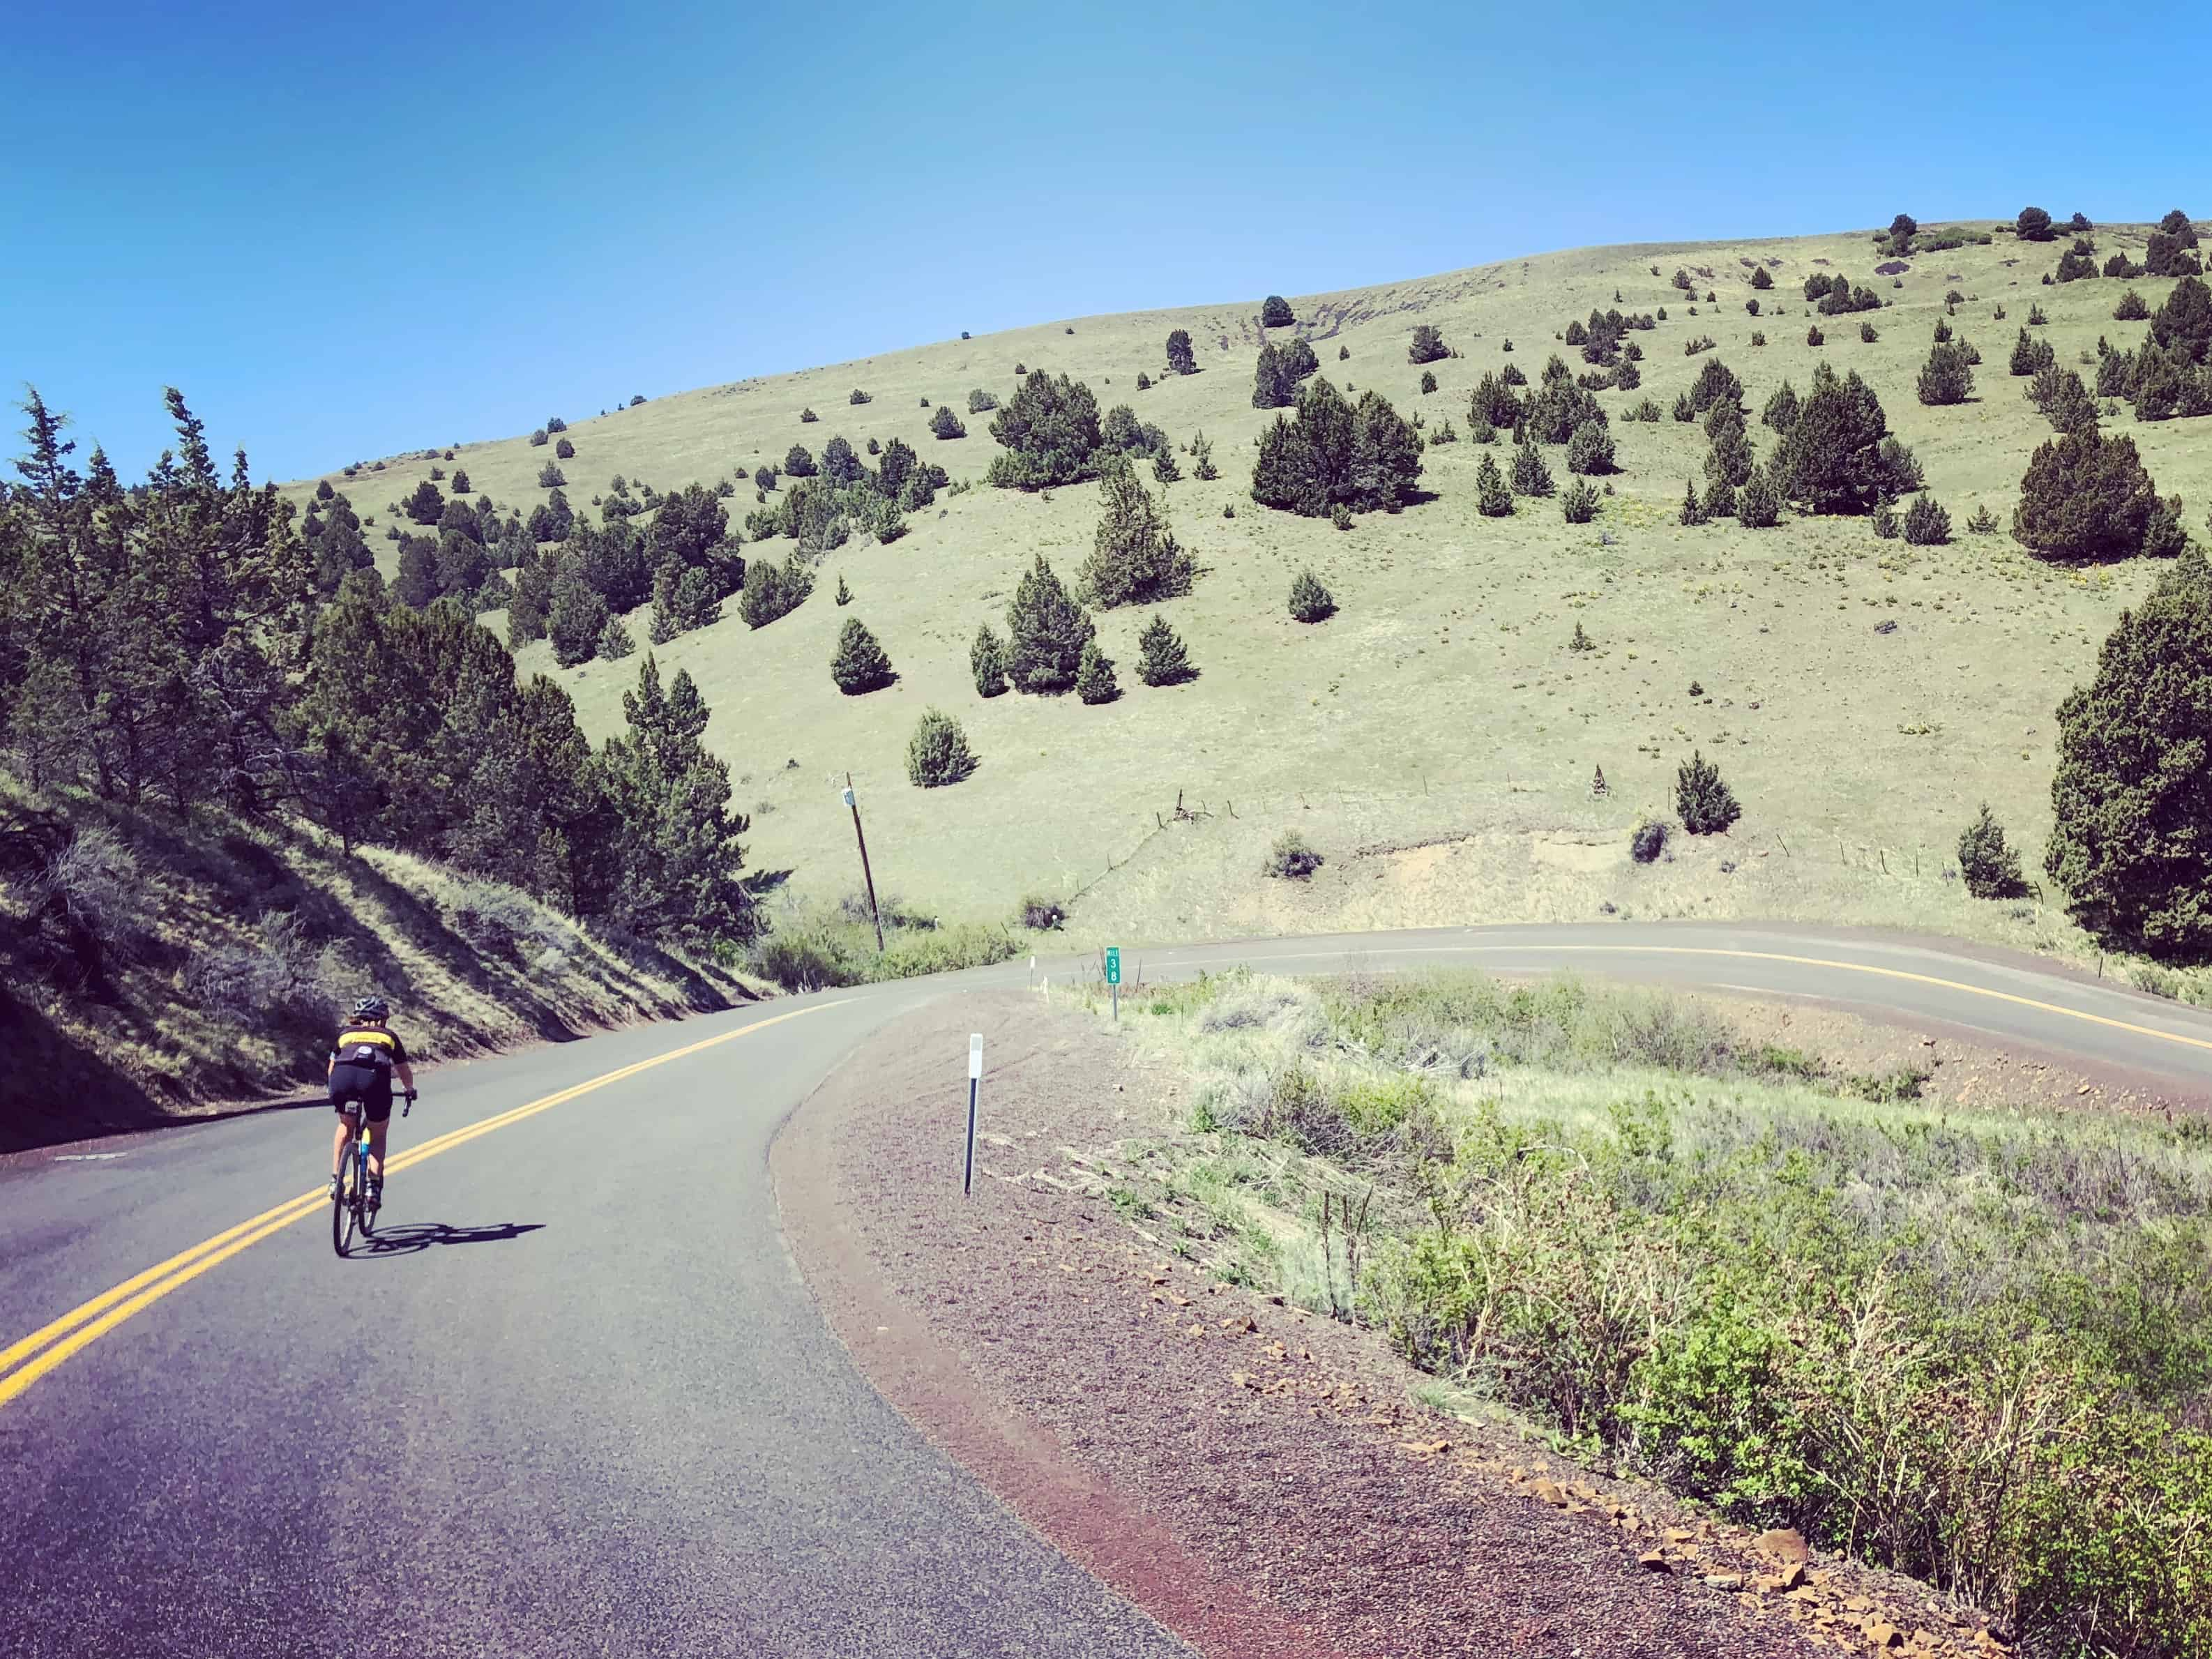 Nicyclist descending Shaniko Fossil Hwy